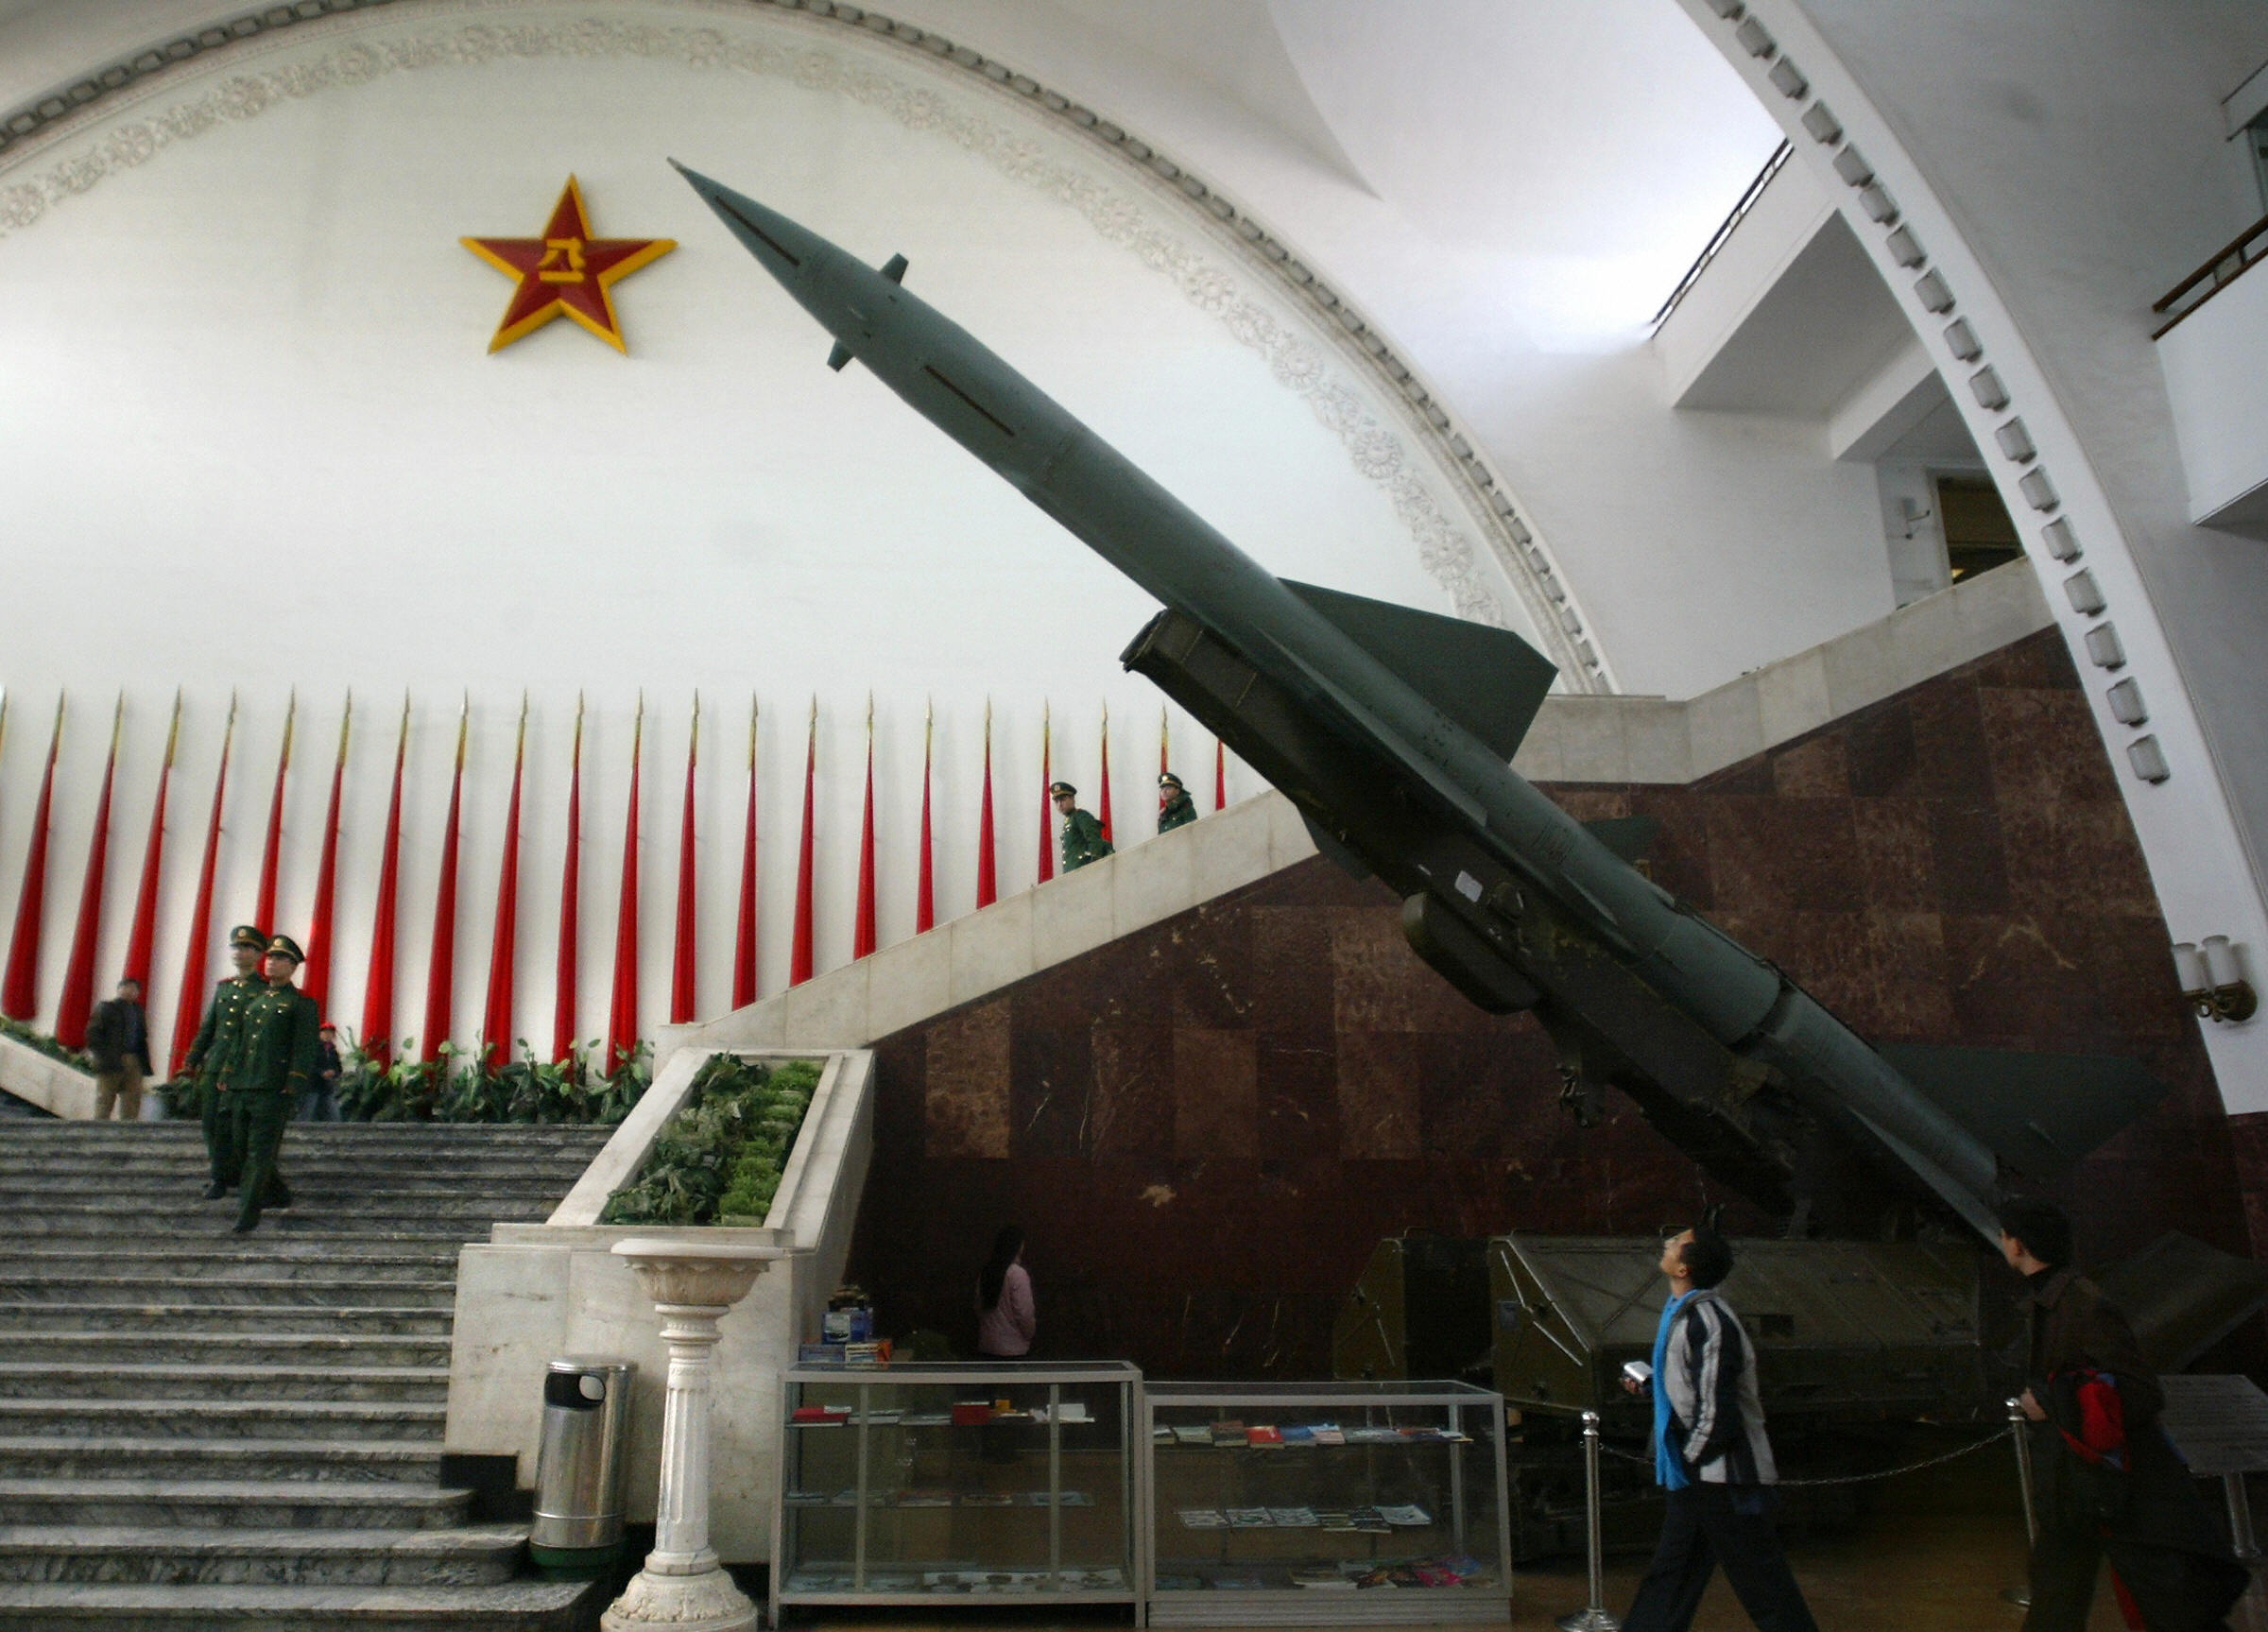 In this file picture taken 06 December 2004, a Chinese-made Hongqi-2 missile is on display at the Military Museum in Beijing. (FREDERIC BROWN/AFP via Getty Images)